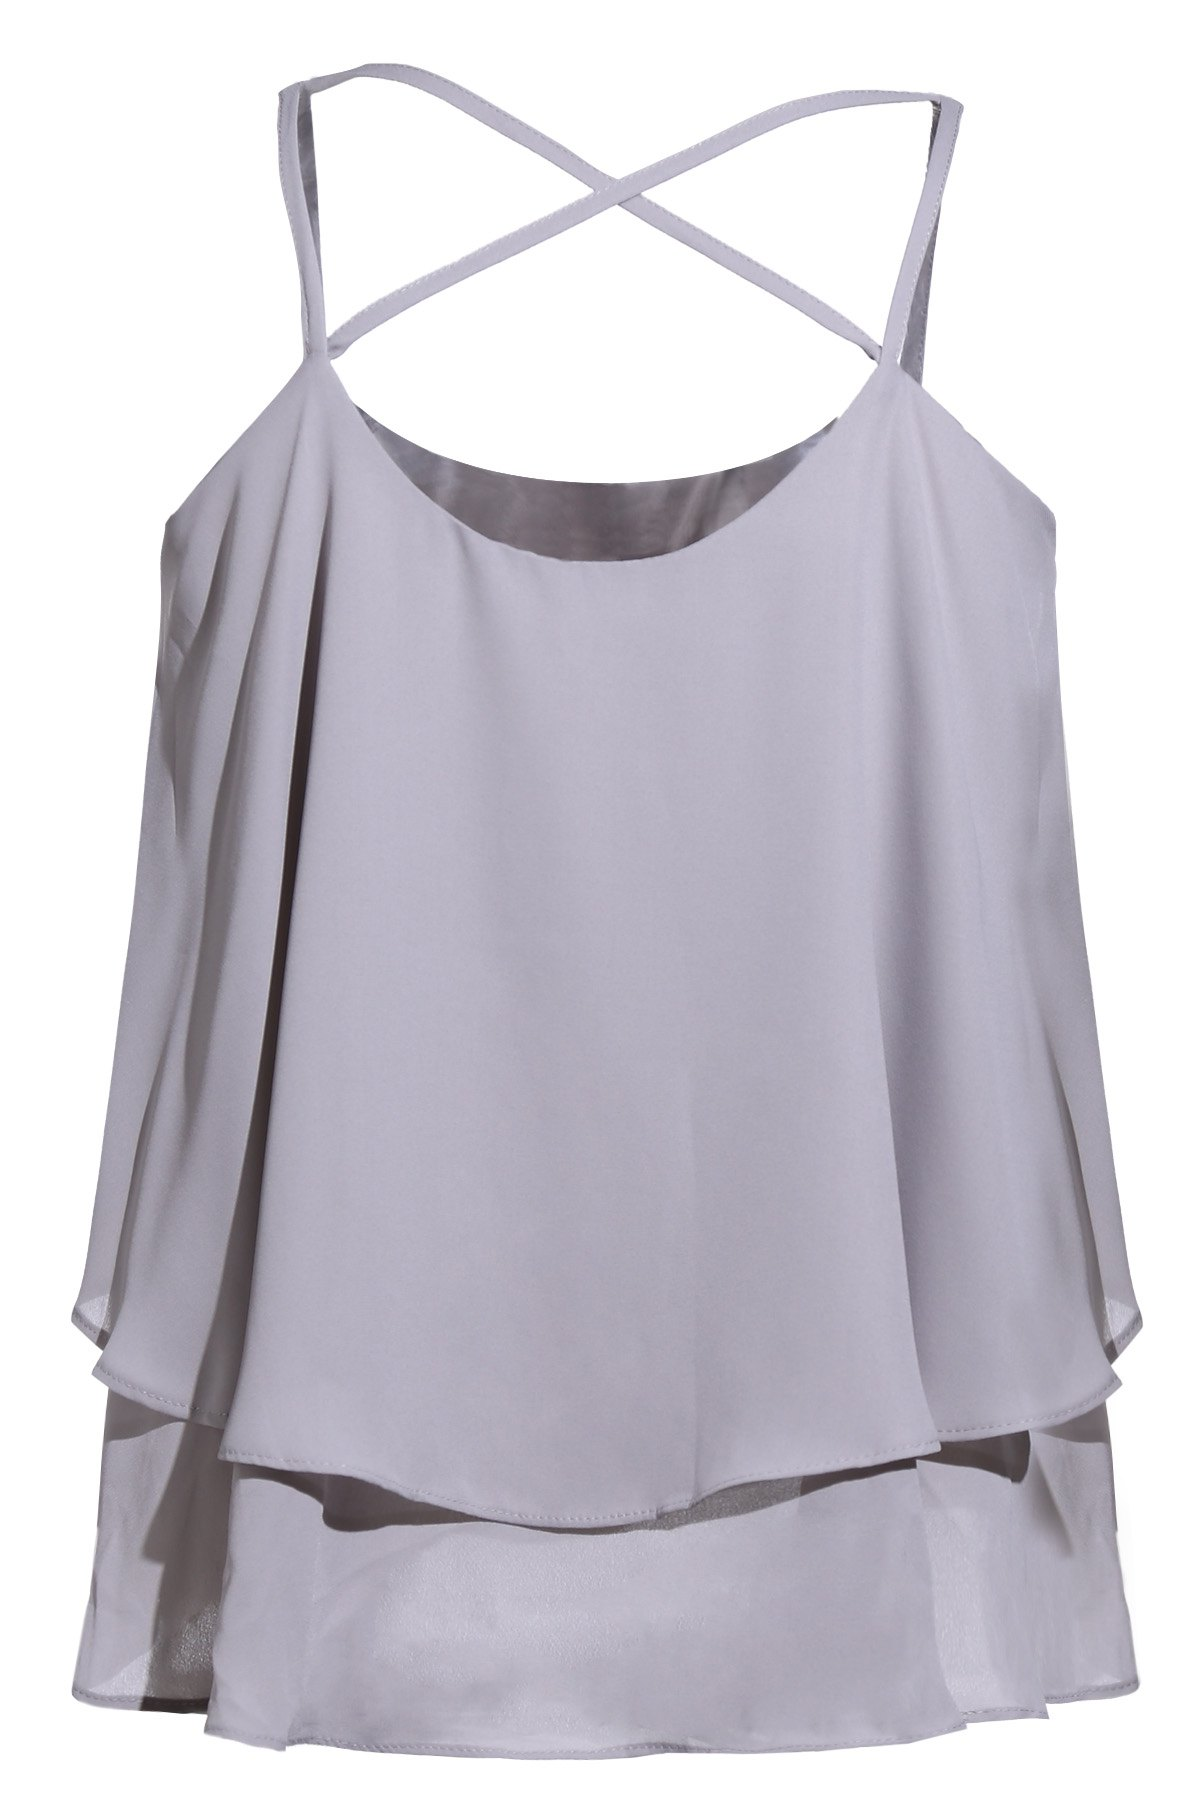 Solid Color Layered Cami Tank Top - GRAY ONE SIZE(FIT SIZE XS TO M)